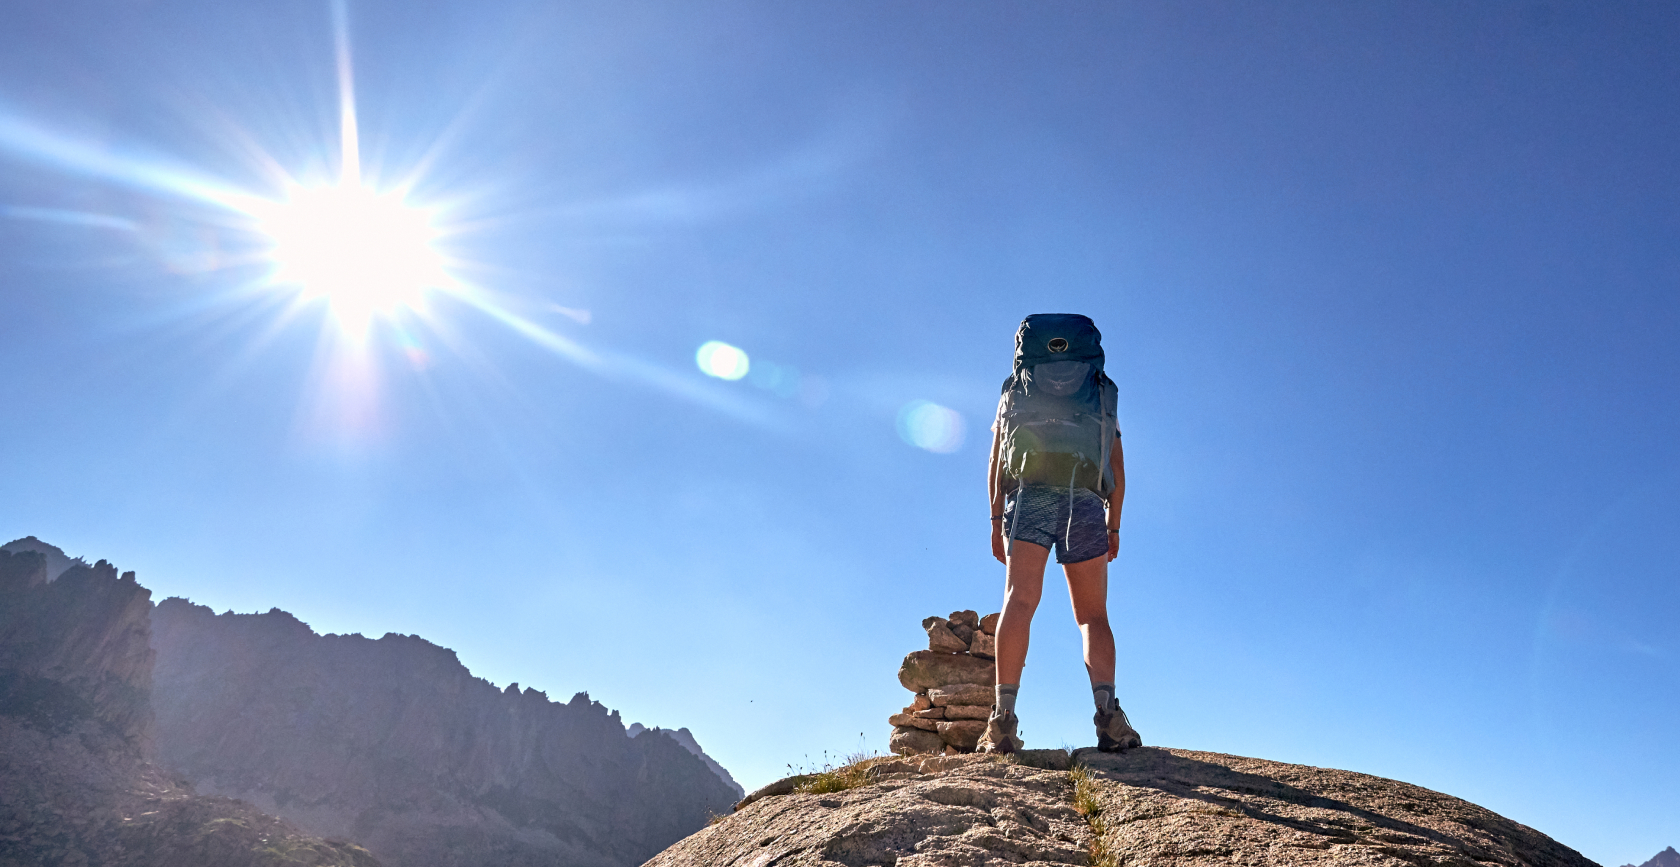 Traveler standing on top of a rock with the sun shining on them